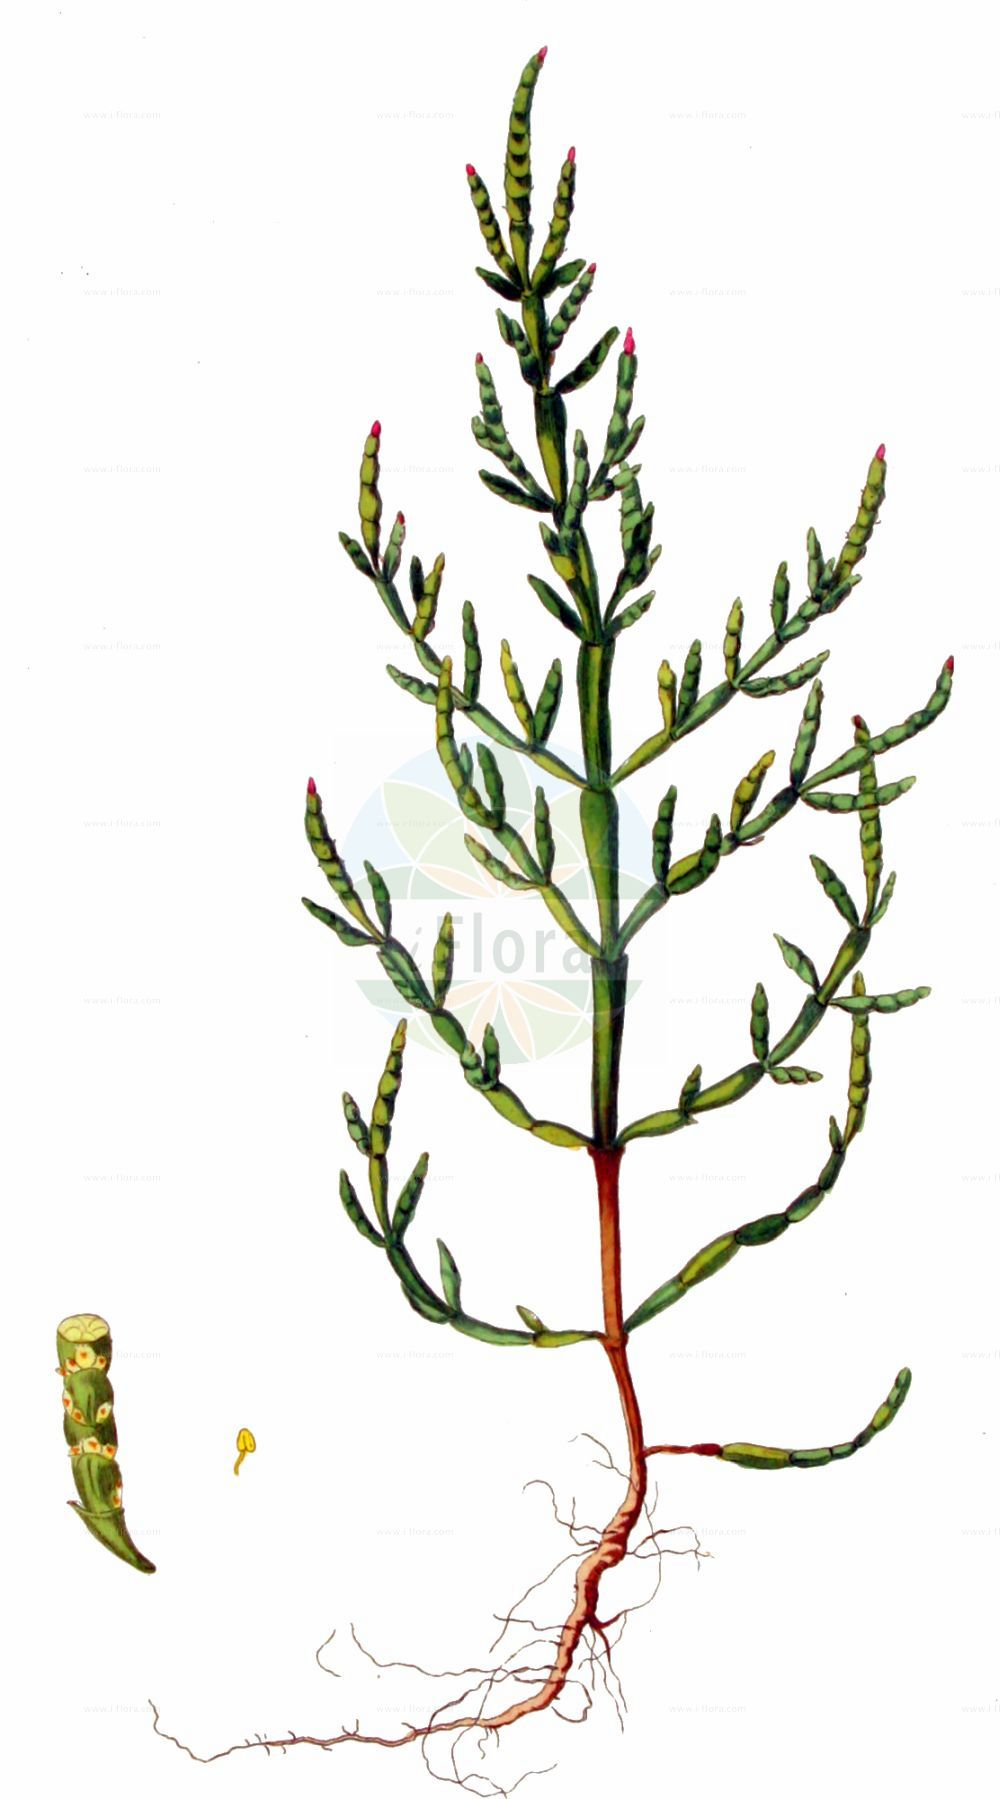 Historische Abbildung von Salicornia europaea (Europaeischer Queller - Common Glasswort). Das Bild zeigt Blatt, Bluete, Frucht und Same. ---- Historical Drawing of Salicornia europaea (Europaeischer Queller - Common Glasswort).The image is showing leaf, flower, fruit and seed.(Salicornia europaea,Europaeischer Queller,Common Glasswort,Salicornia annua,Salicornia europaea,Salicornia herbacea,Europaeischer Queller,Gewoehnlicher Queller,Kurzaehren-Queller,Queller,Common Glasswort,Purple Glasswort,Glaucous Glasswort,Red Swampfire,Slender Grasswort,Salicornia,Queller,Glassworts,Amaranthaceae,Fuchsschwanzgewaechse,Pigweed family,Blatt,Bluete,Frucht,Same,leaf,flower,fruit,seed,Kops (1800-1934))